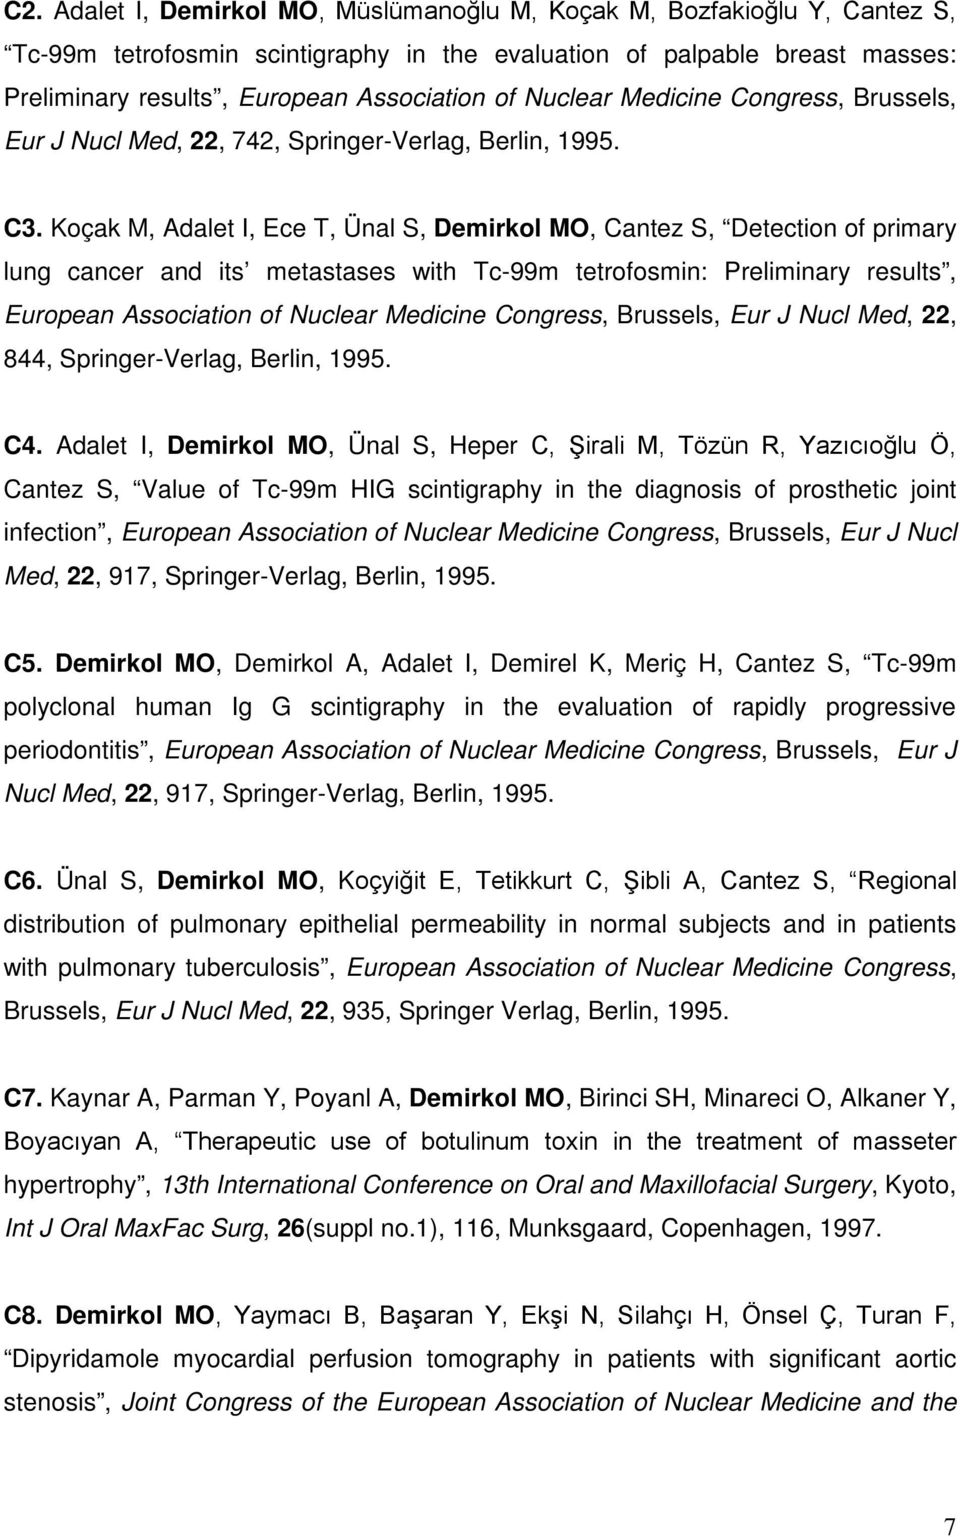 Koçak M, Adalet I, Ece T, Ünal S, Demirkol MO, Cantez S, Detection of primary lung cancer and its metastases with Tc-99m tetrofosmin: Preliminary results, European Association of Nuclear Medicine